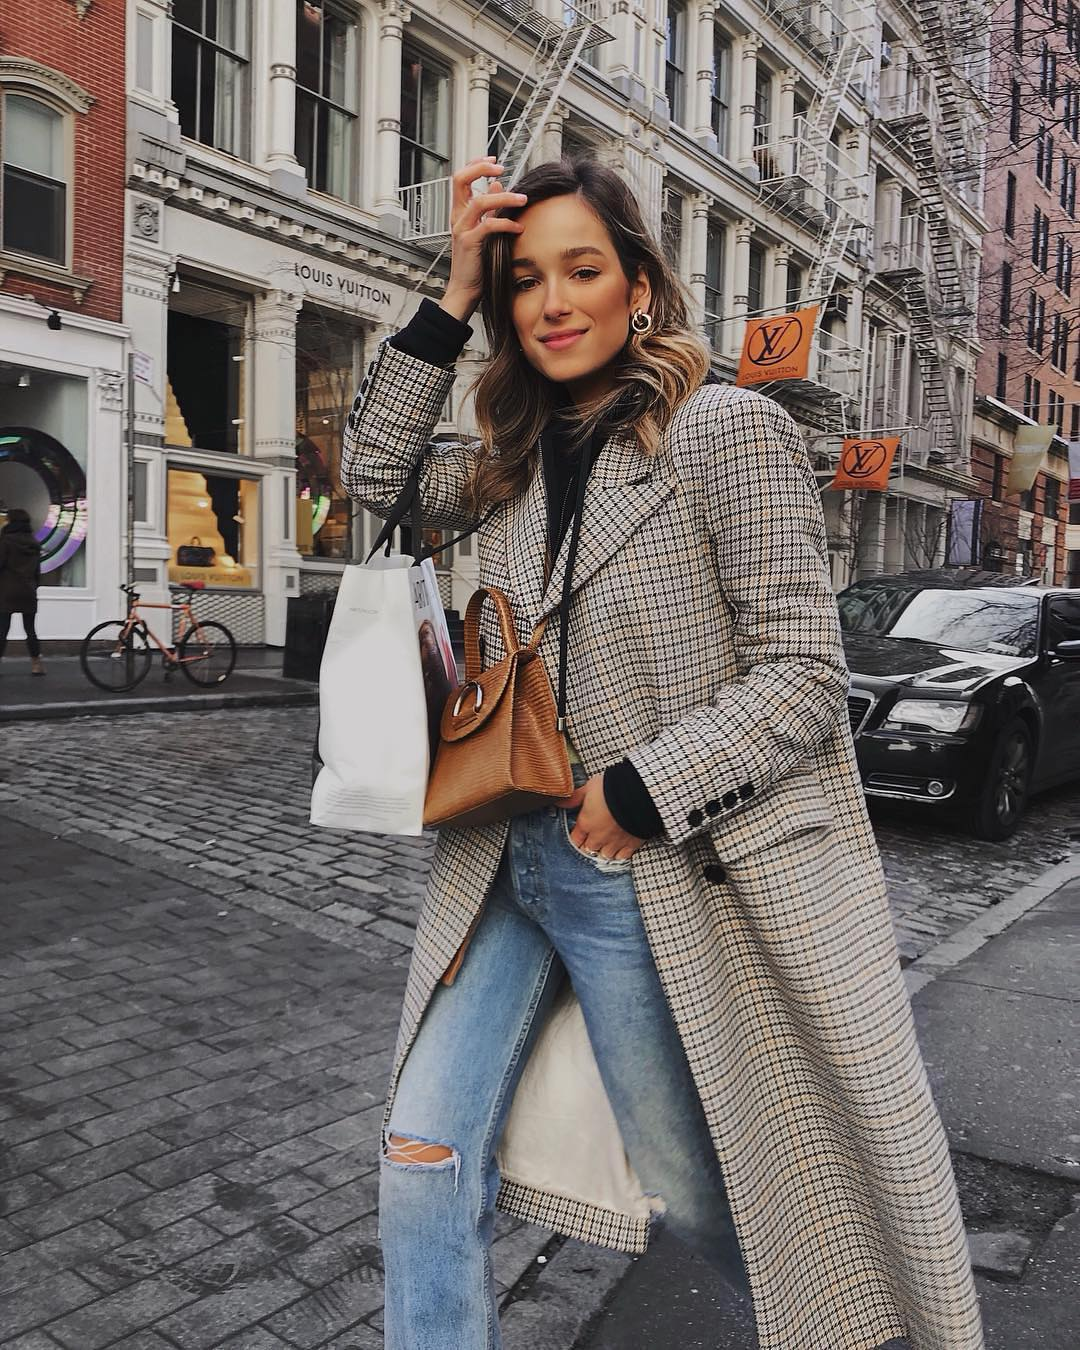 Fall Layering Basics: Checkered Coat, Black Top, and Ripped Jeans 2021